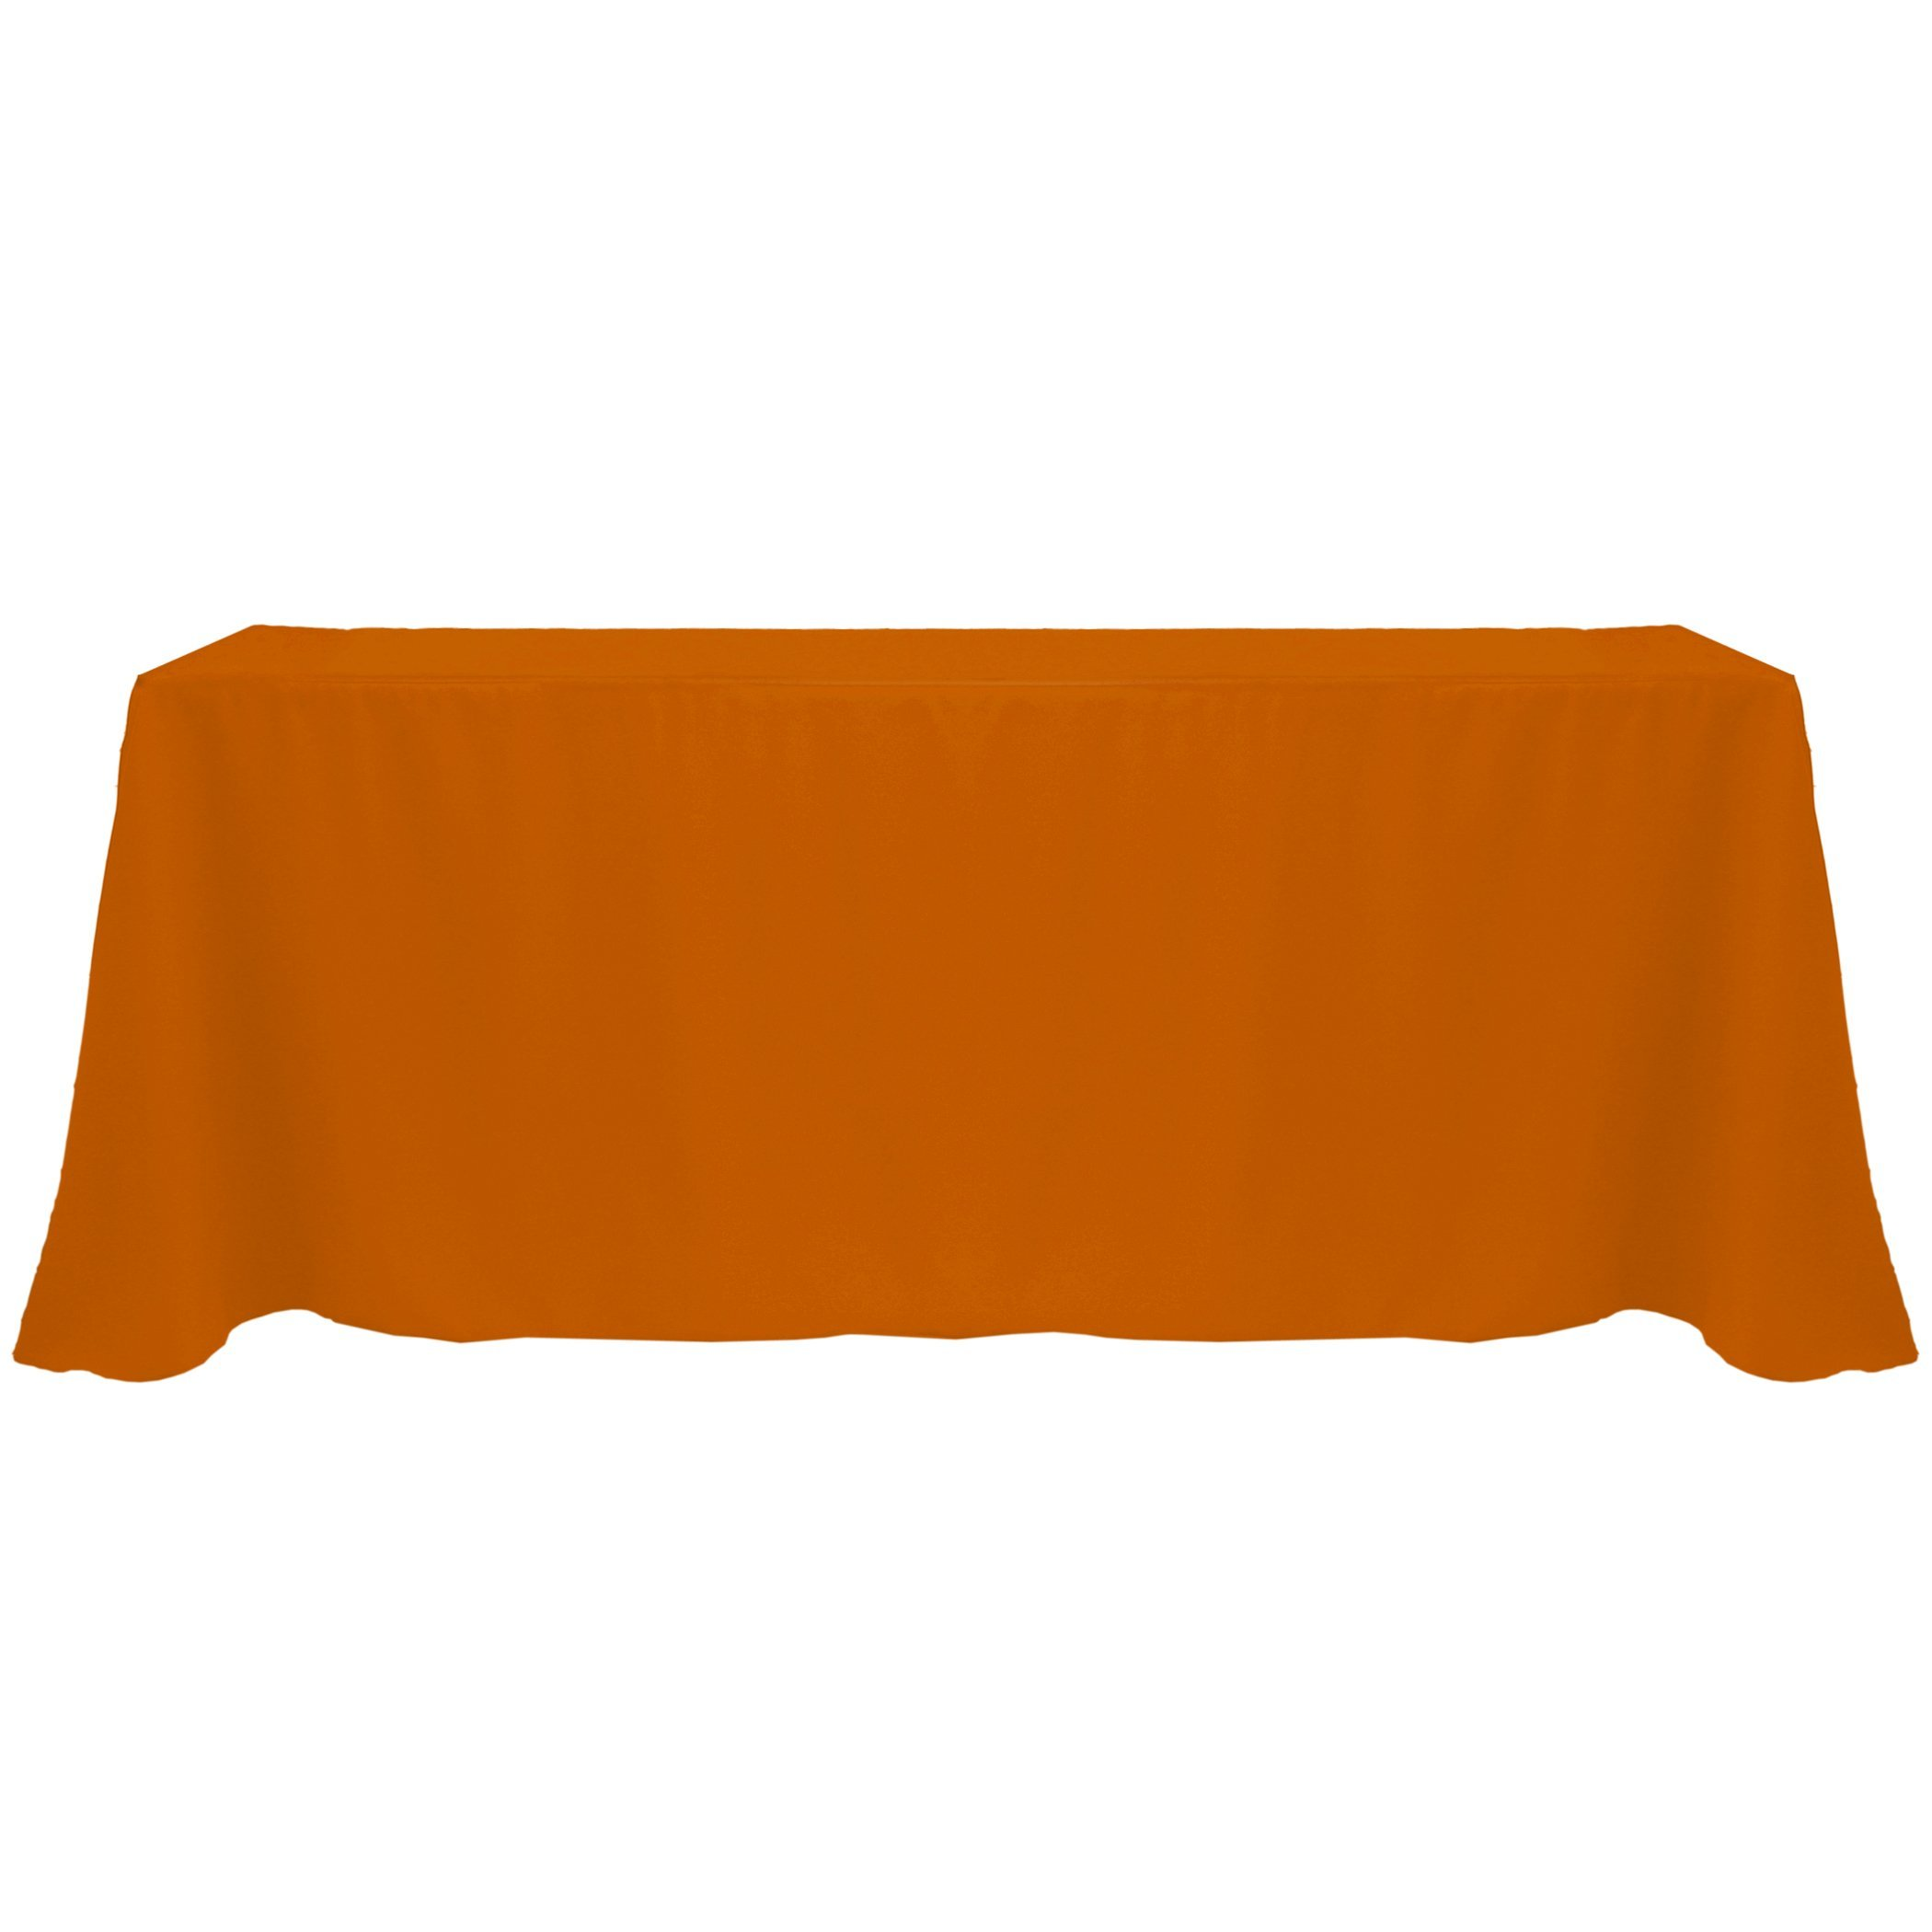 Ultimate Textile (20 Pack) 90 x 132-Inch Rectangular Polyester Linen Tablecloth with Rounded Corners - for Wedding, Restaurant or Banquet use, Burnt Orange